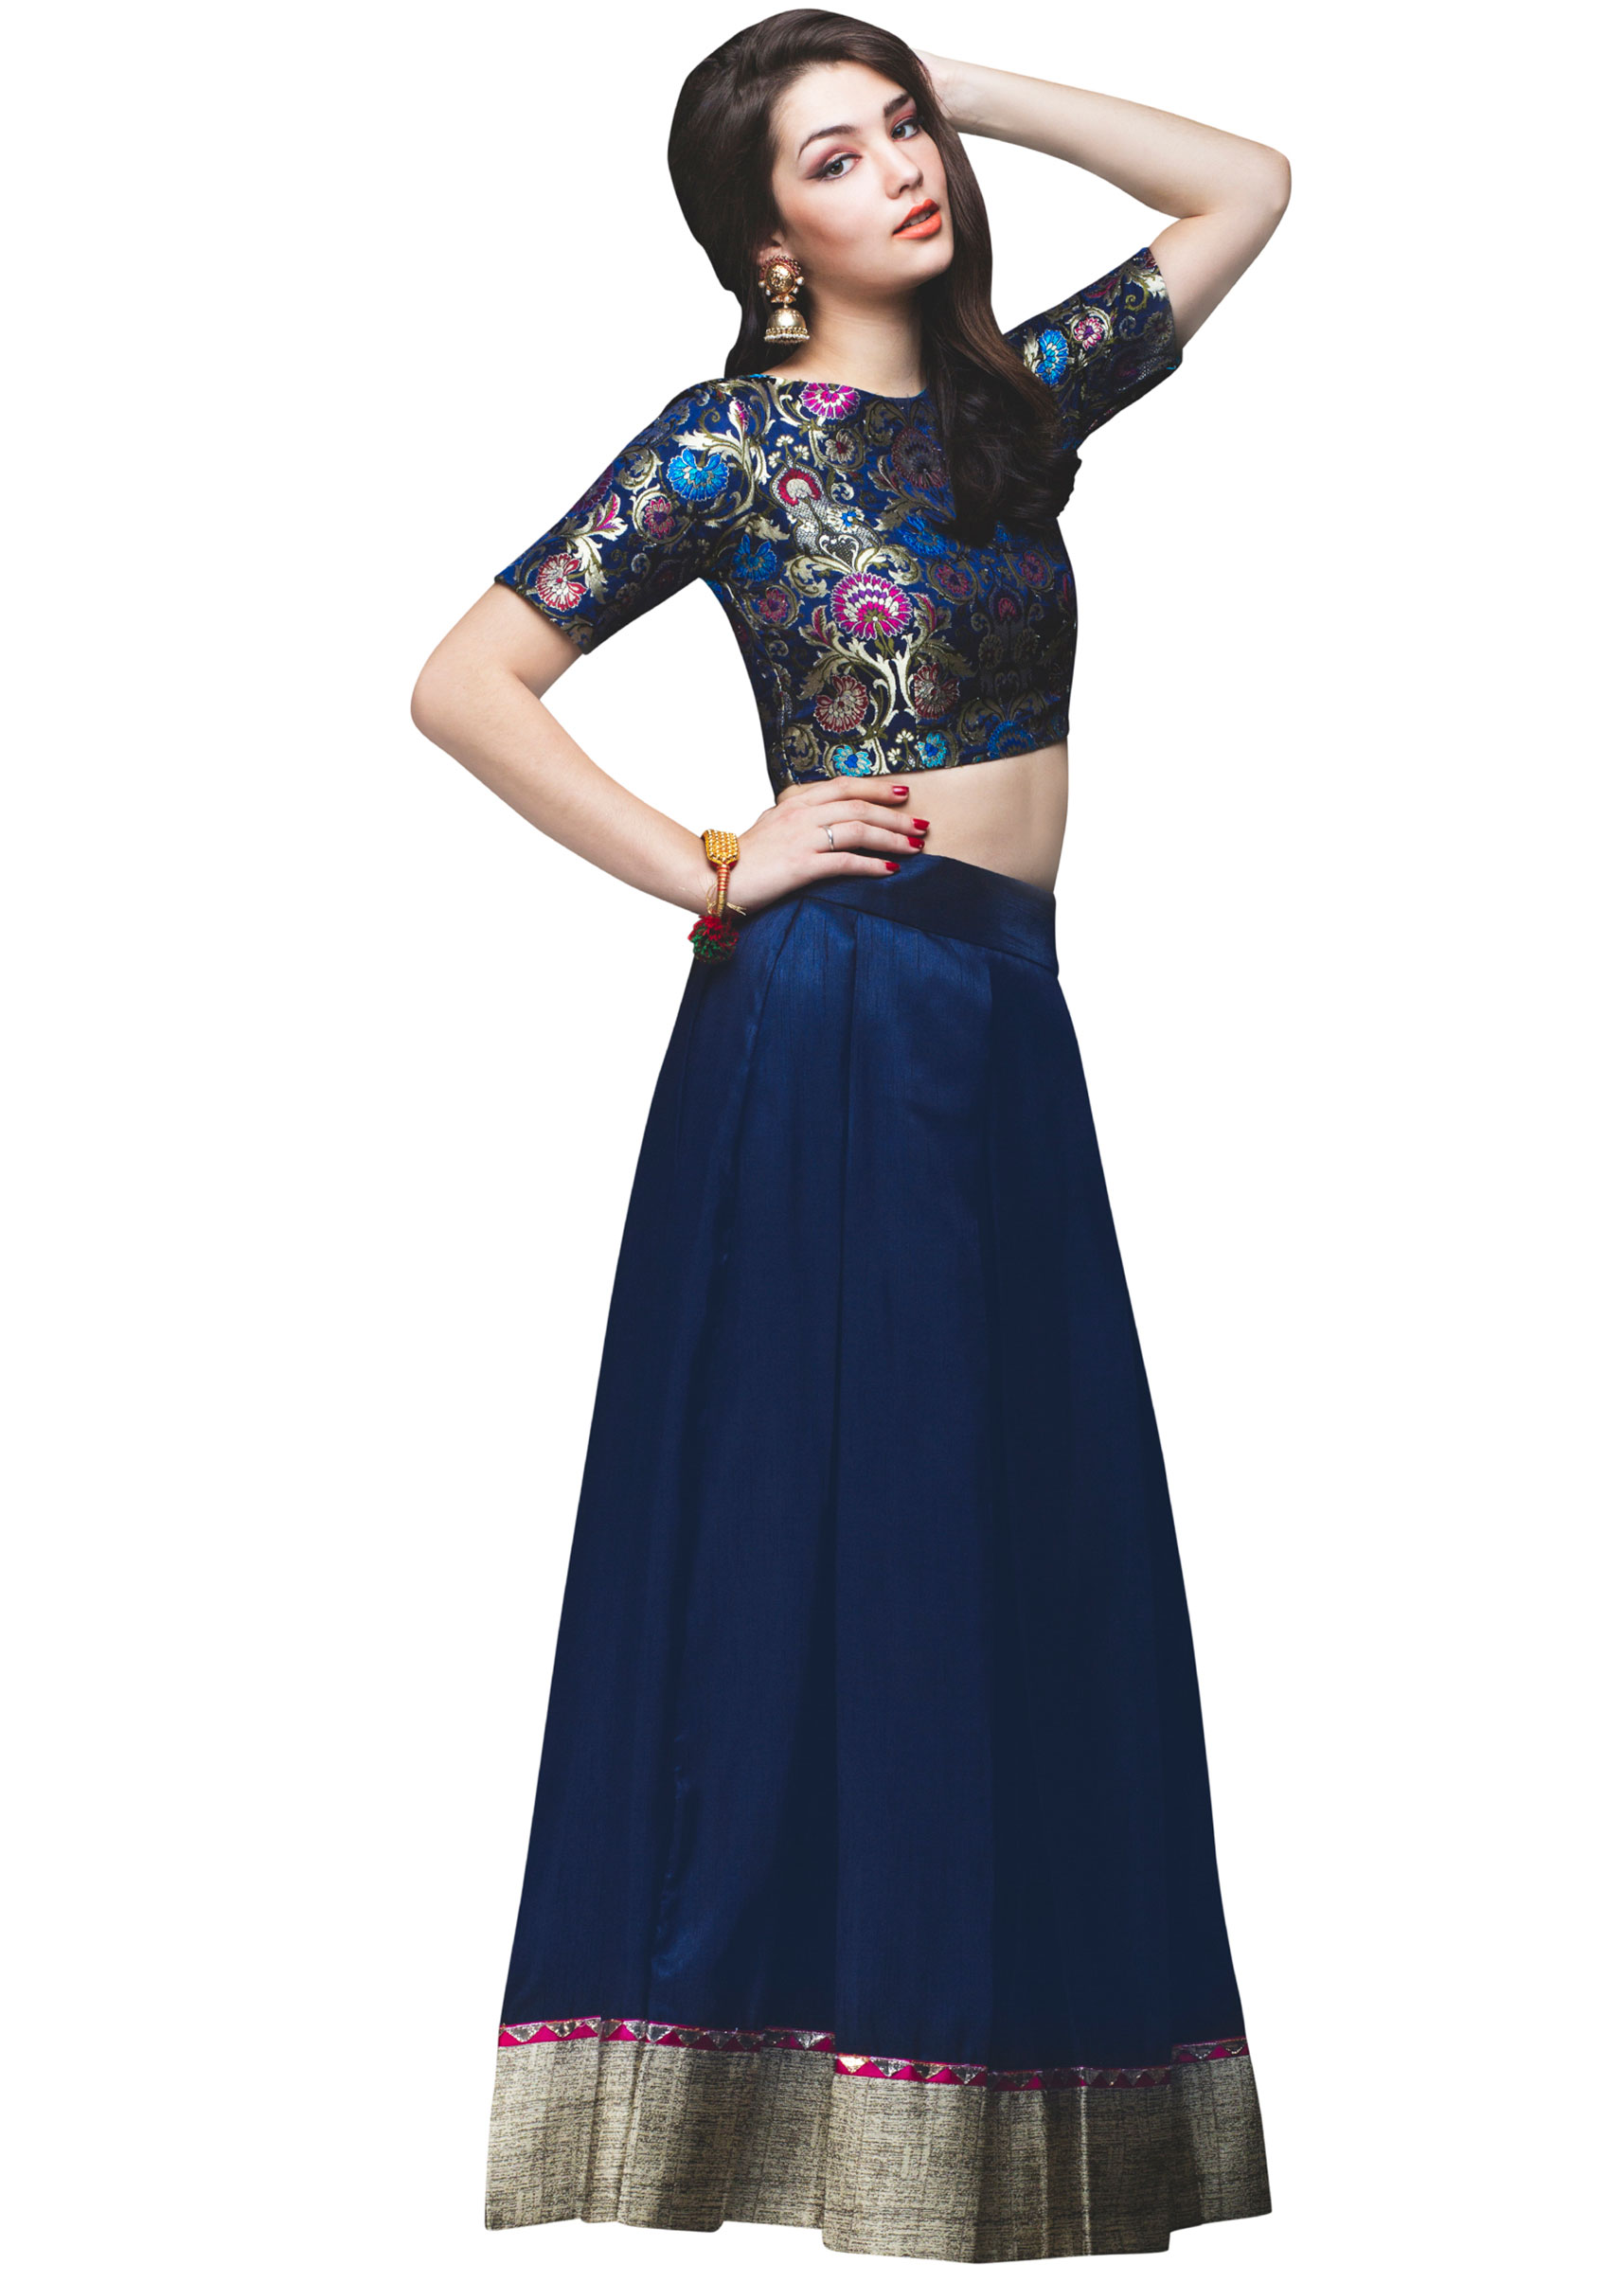 8c1d387222 Navy blue skirt matched with crop top brocade blouse